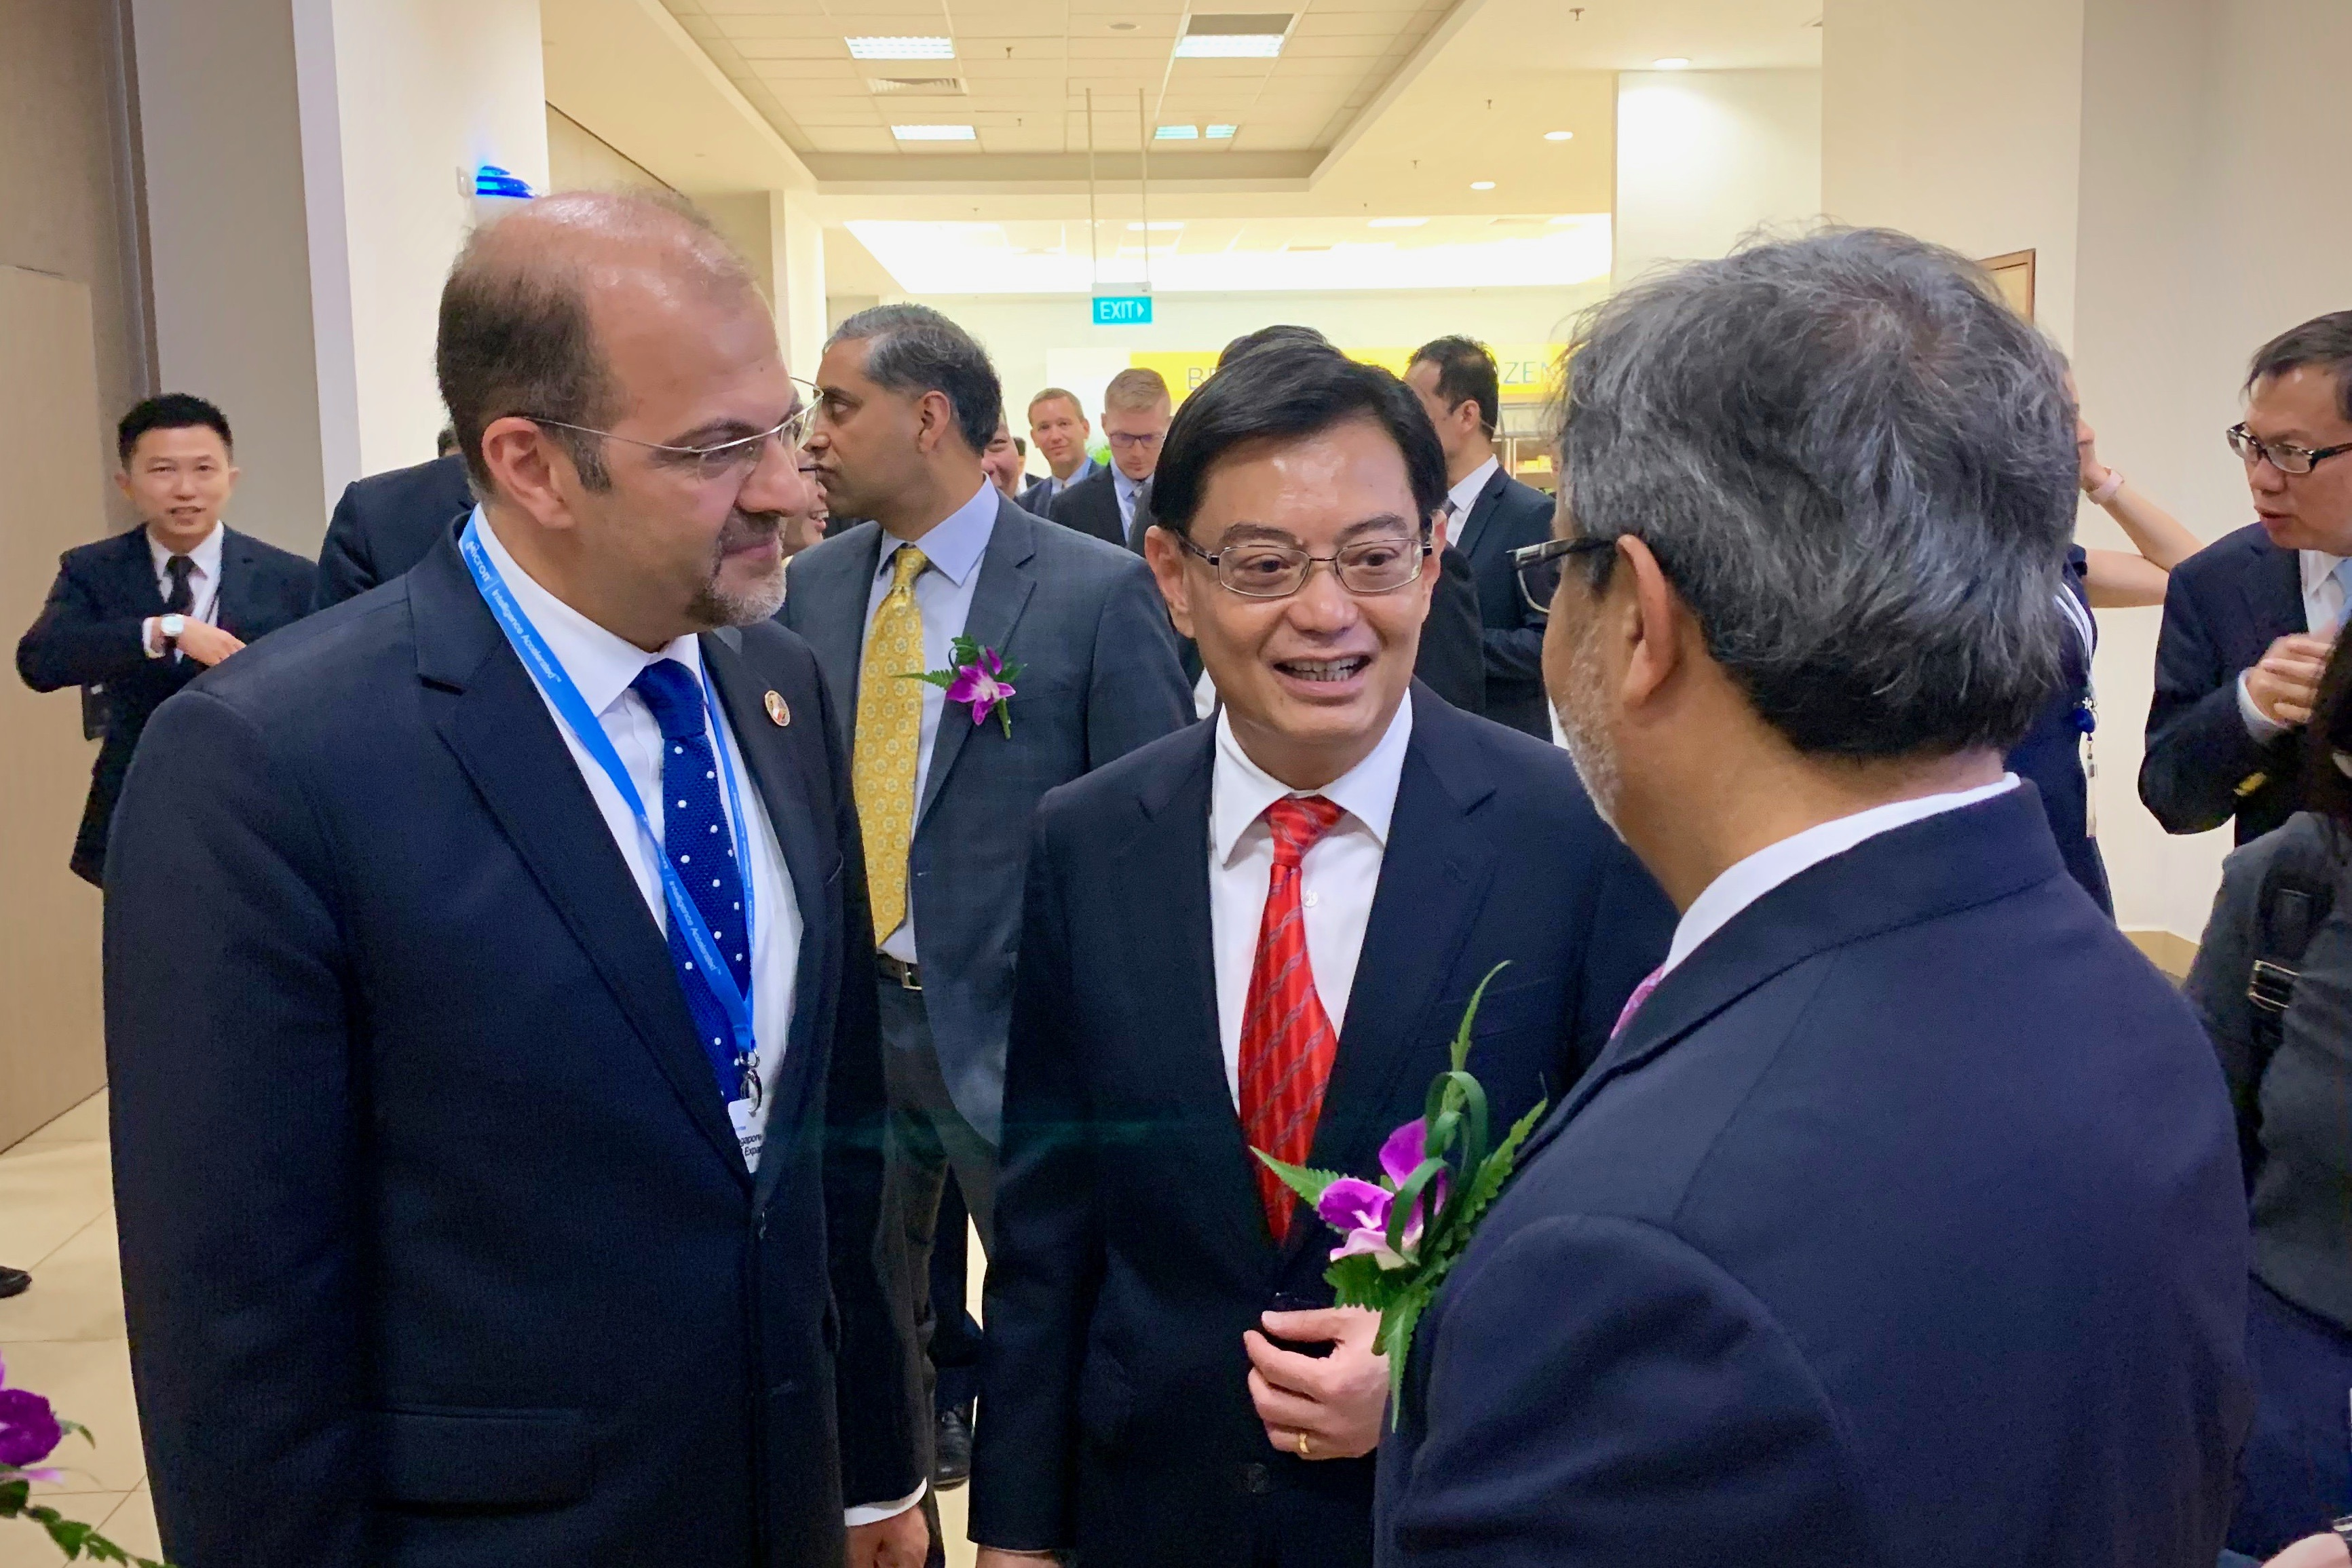 Micron opens Fab10 facility expansion, demonstrating confidence in Singapore